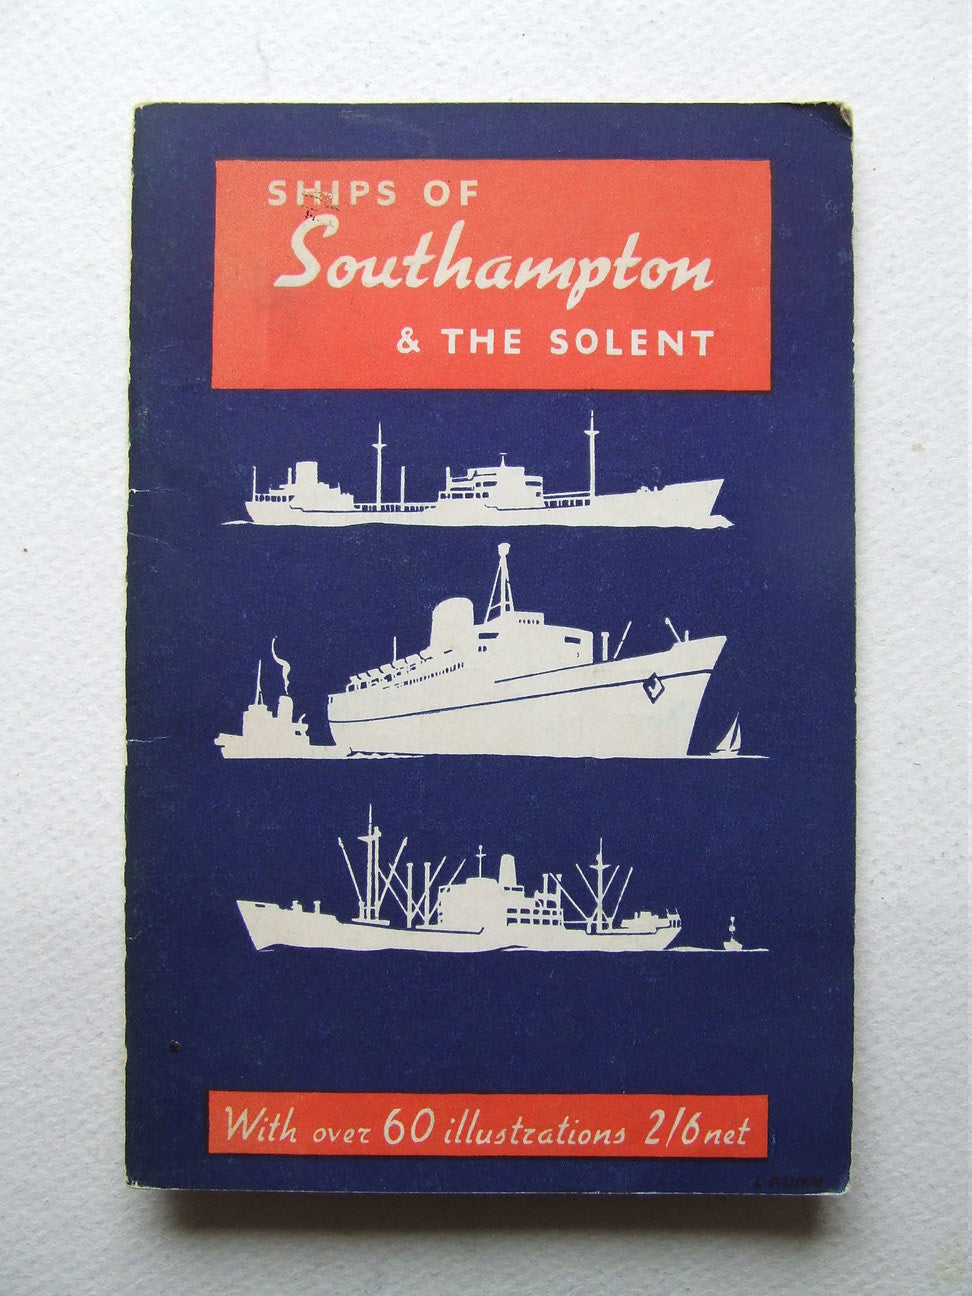 Ships of Southampton and seen on the Solent